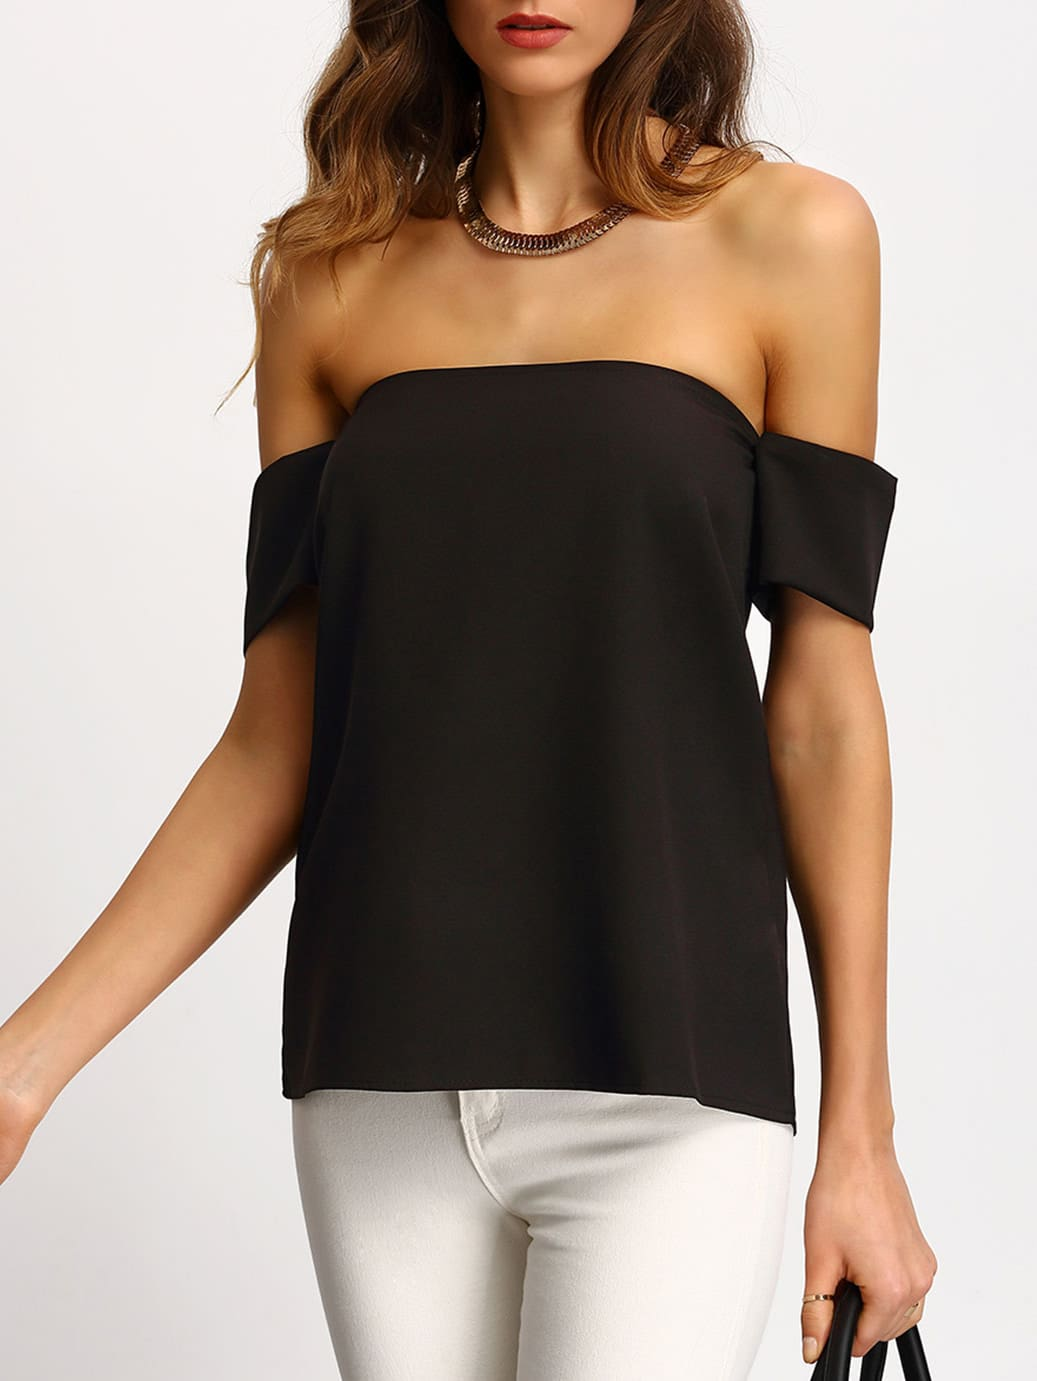 Off The Shoulder Tunic Top blouse160324054